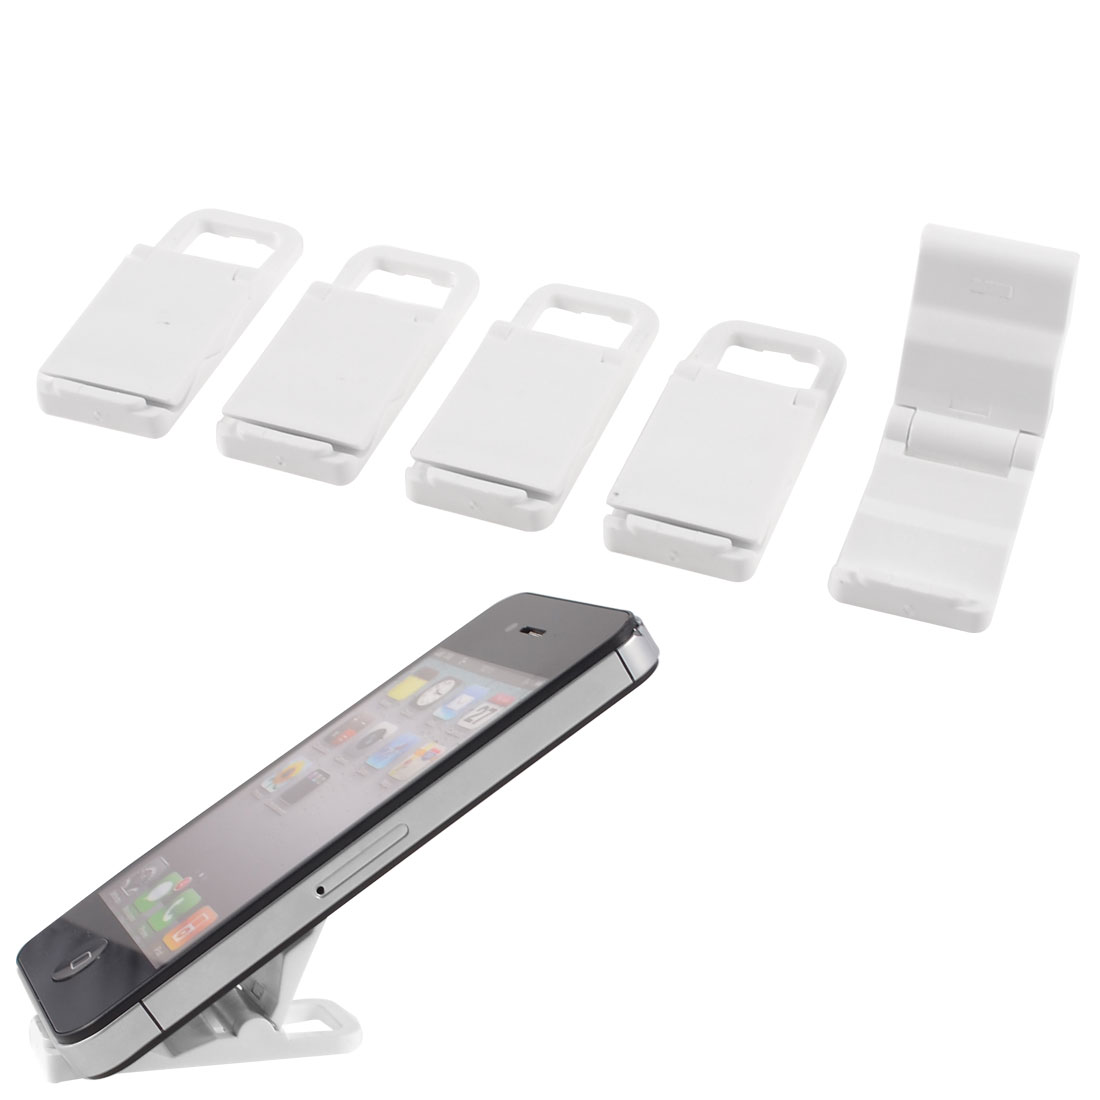 5 Pcs White Plastic Foldable Stand Holder for MP4 Mobile Phone